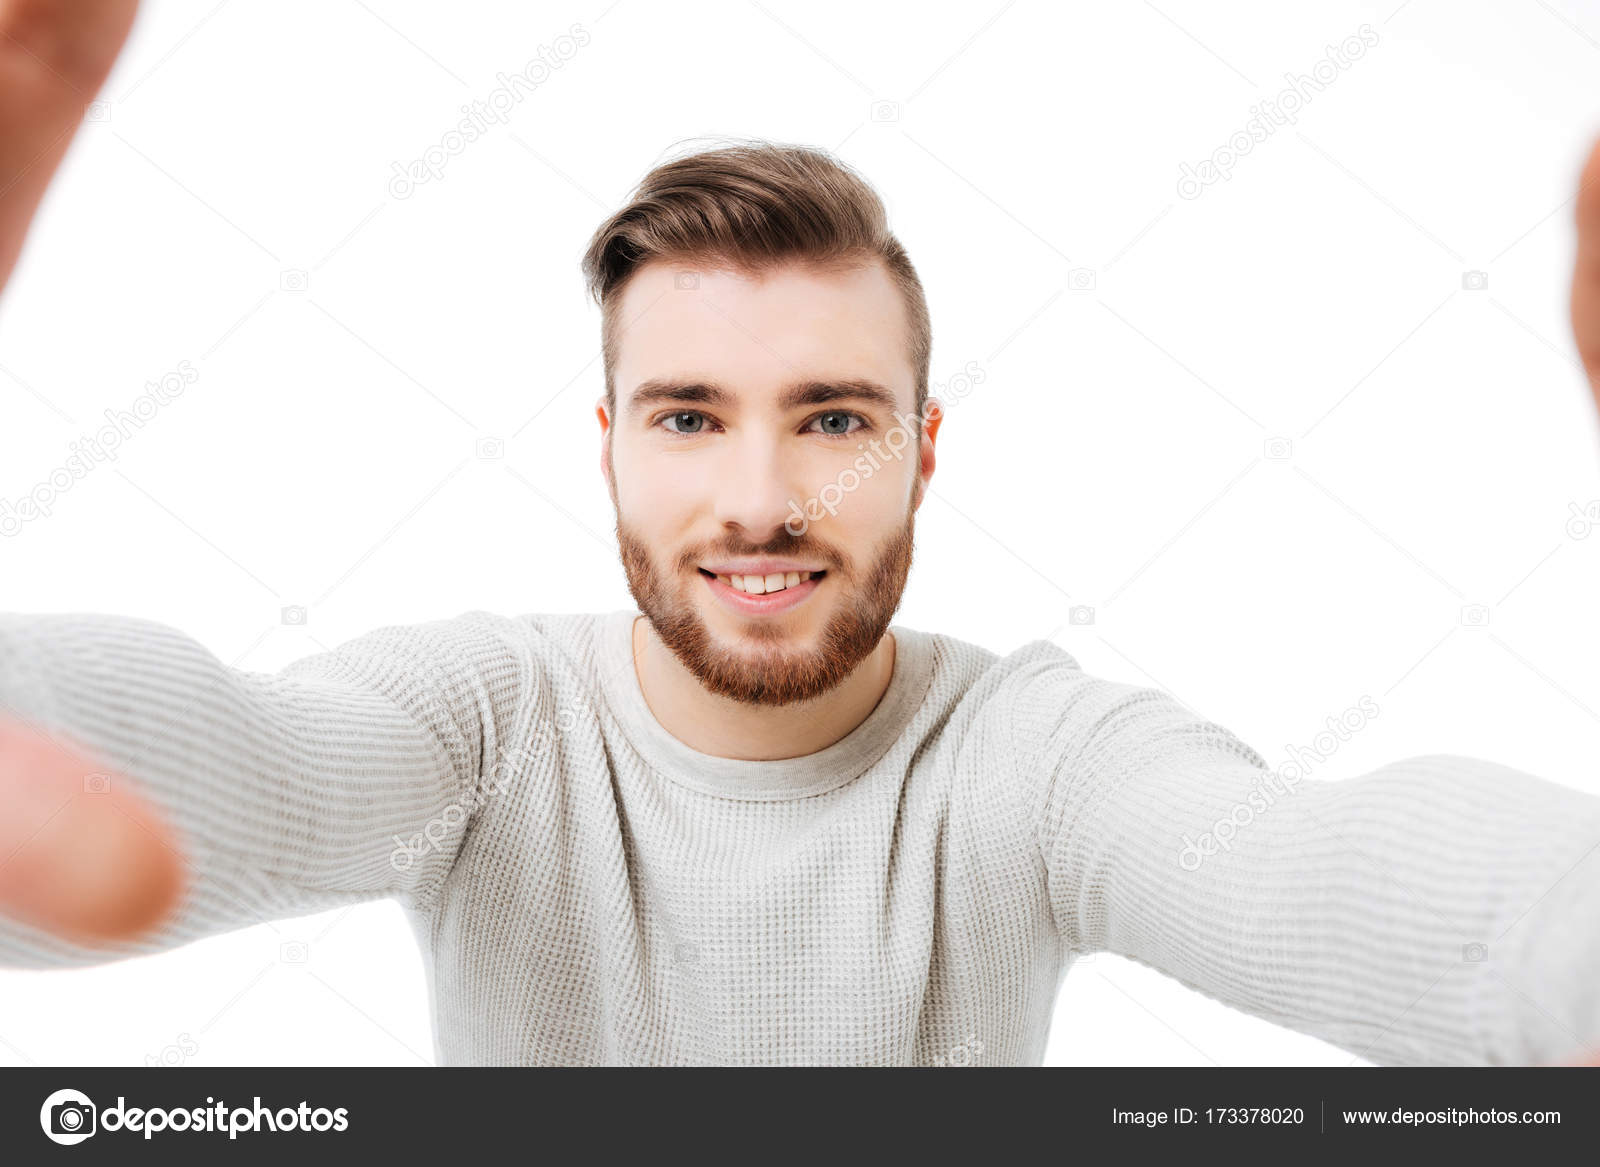 male selfie pictures